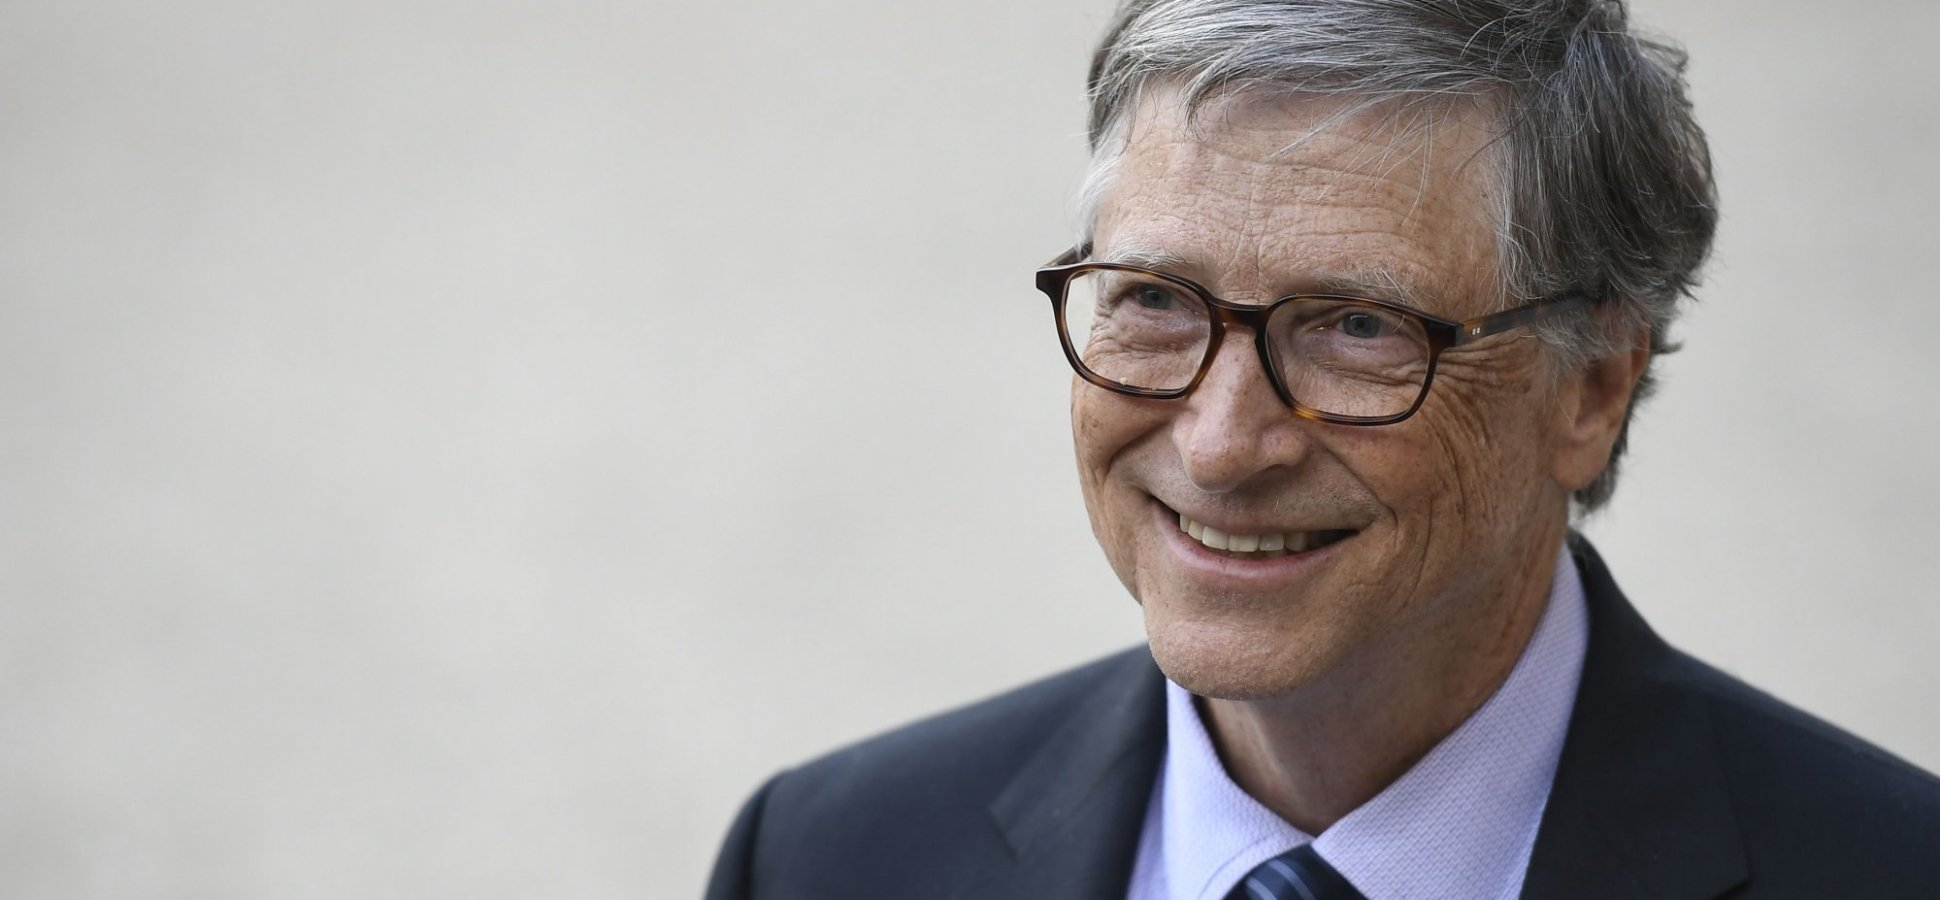 Bill Gates: Skip the Page-Turners This Summer and Read These 5 Provocative Titles Instead